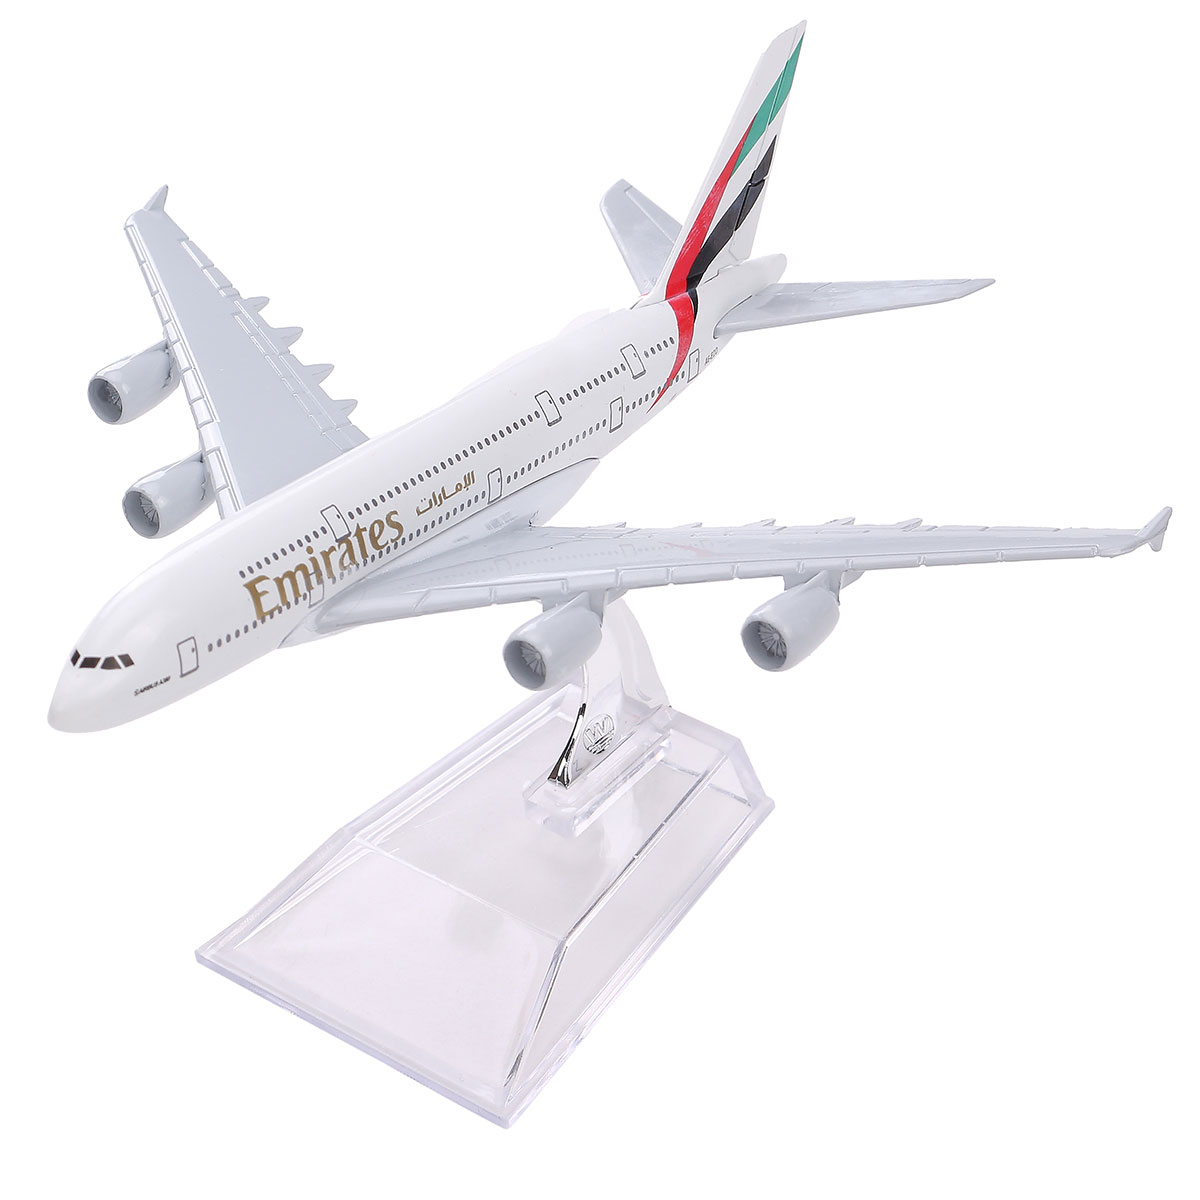 New Airbus380 Emirates Airlines A-380 Aircraft Aeroplan 16cm High Simulation Diecast Model United Arab Emirates A380(China)